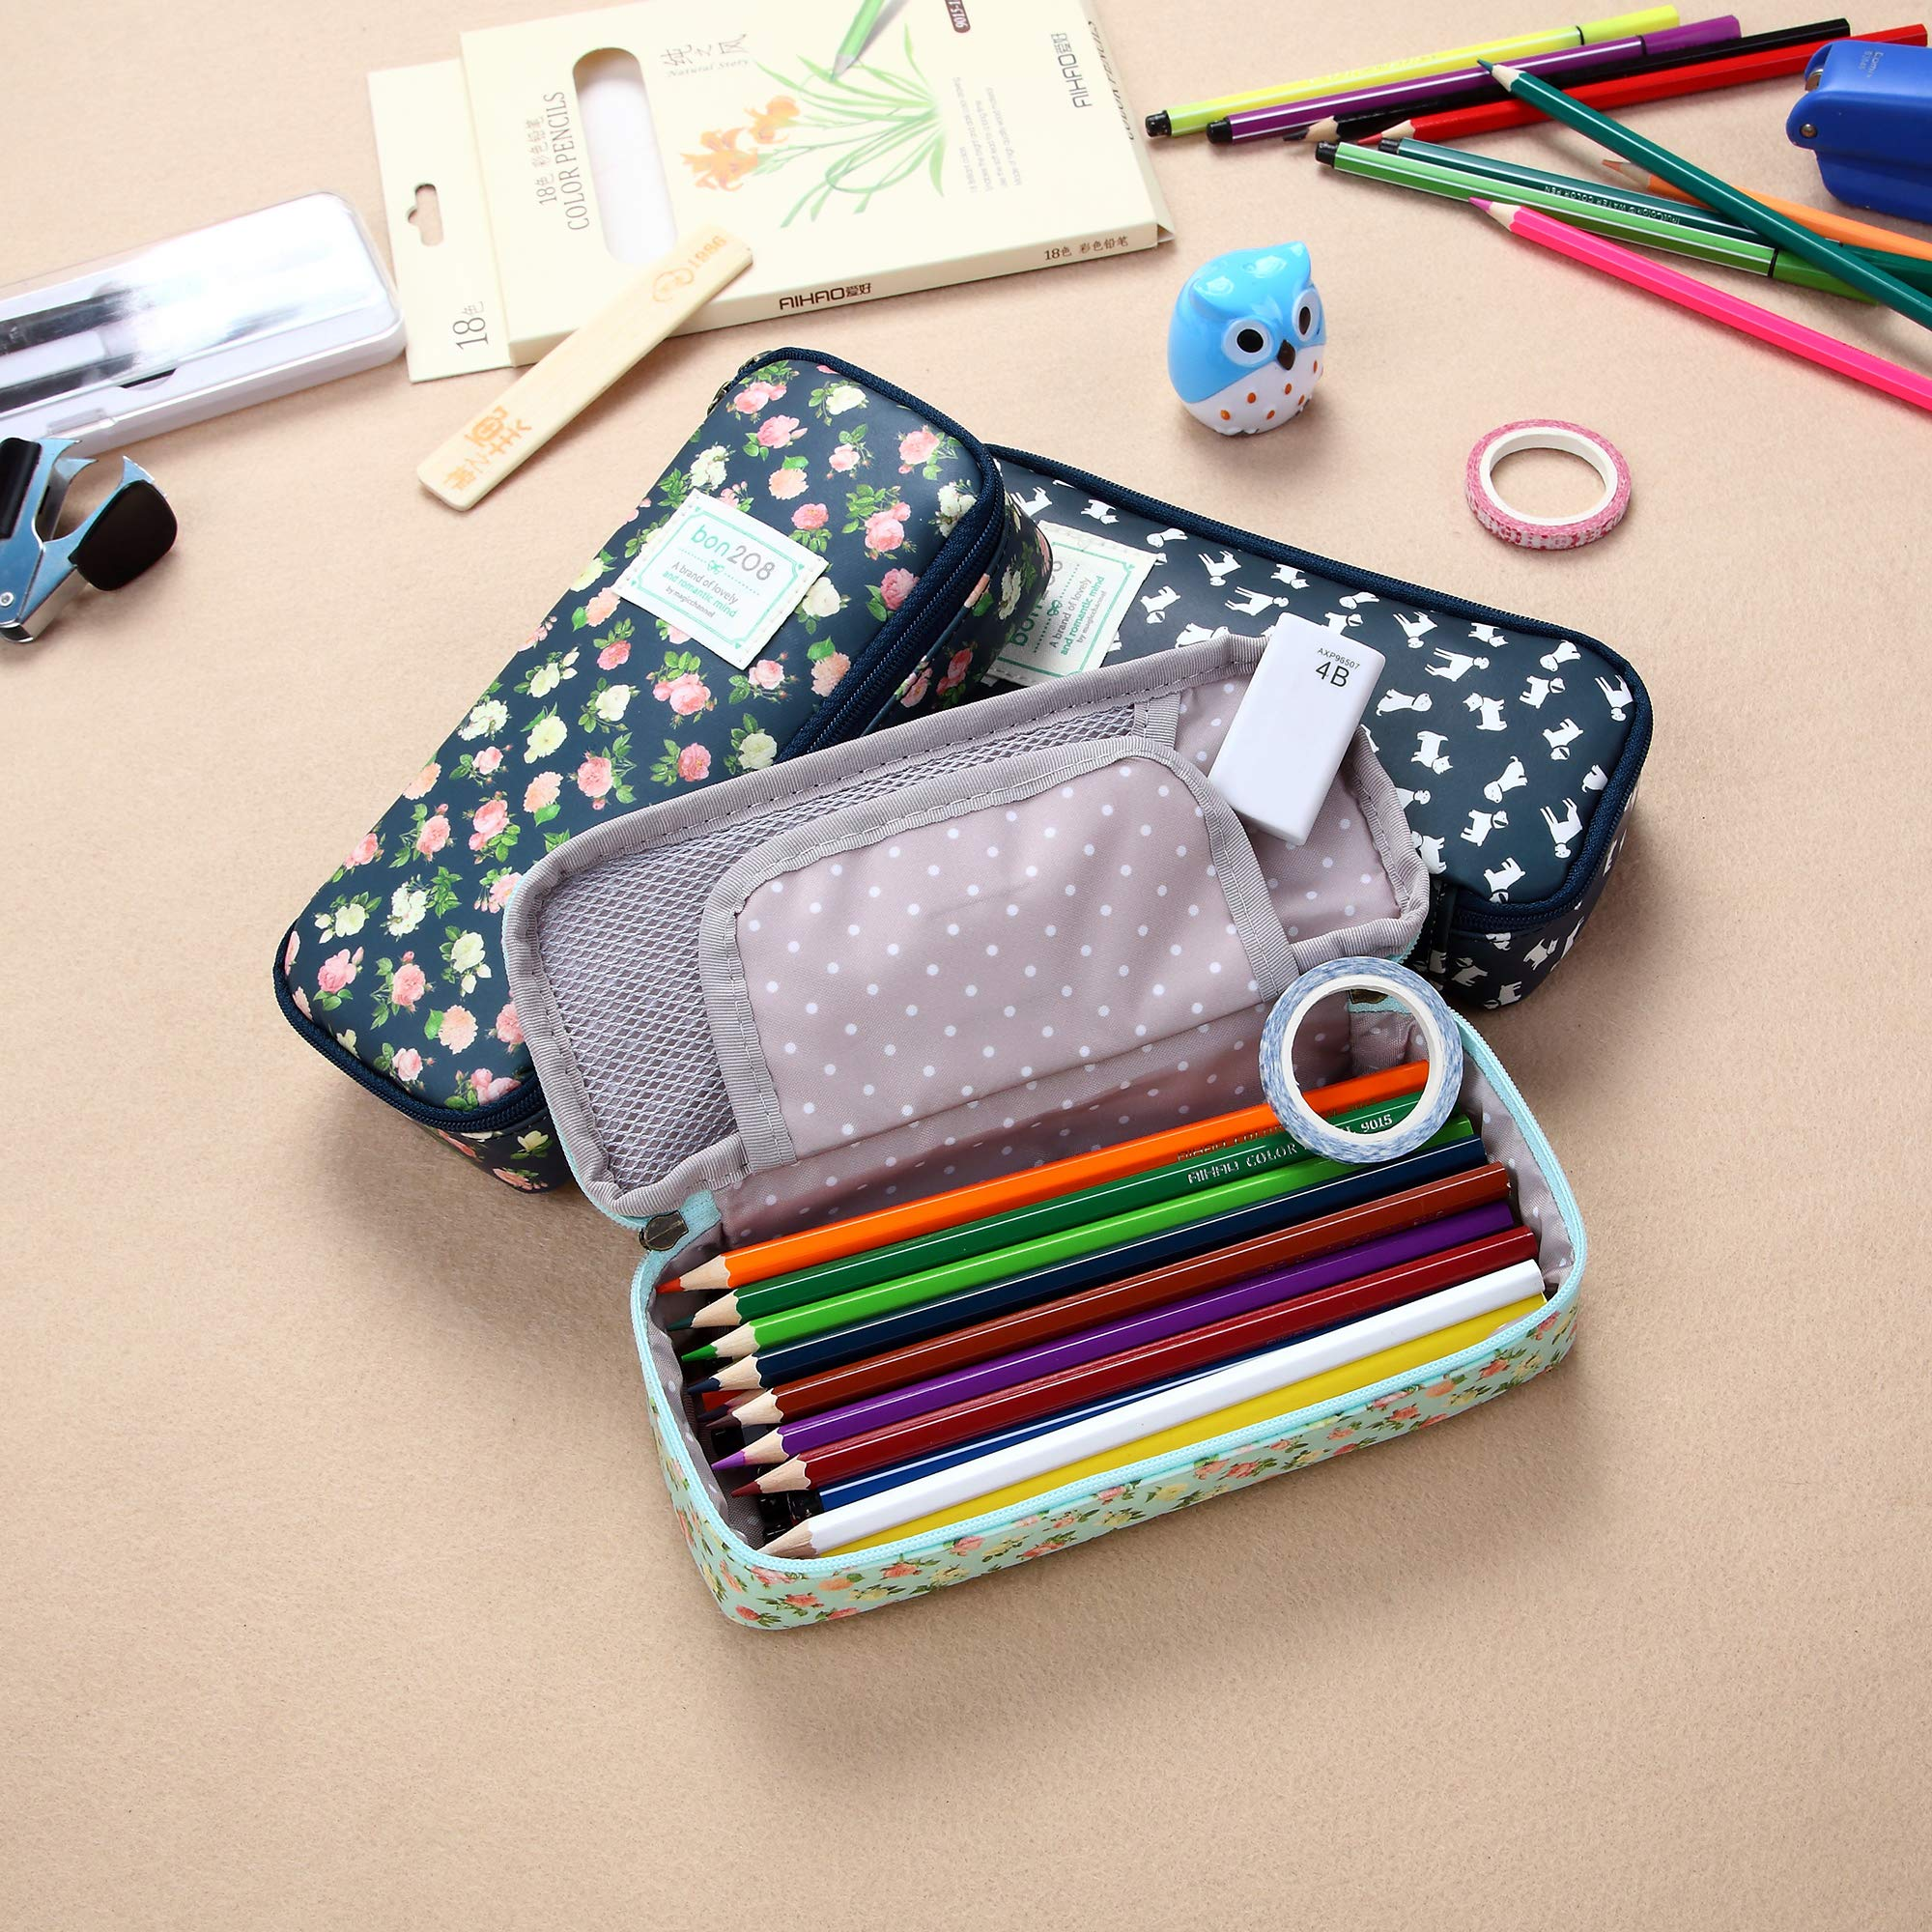 D.Sword Cute Pencil Case for Kid,Big Capacity Pen Bag Student Office Stationery Organizer for College Middle School Grade School,Floral Pencil Pouch Cosmetic Bag Makeup Bag(Light Green with Flowers) by Dragon Sword (Image #7)